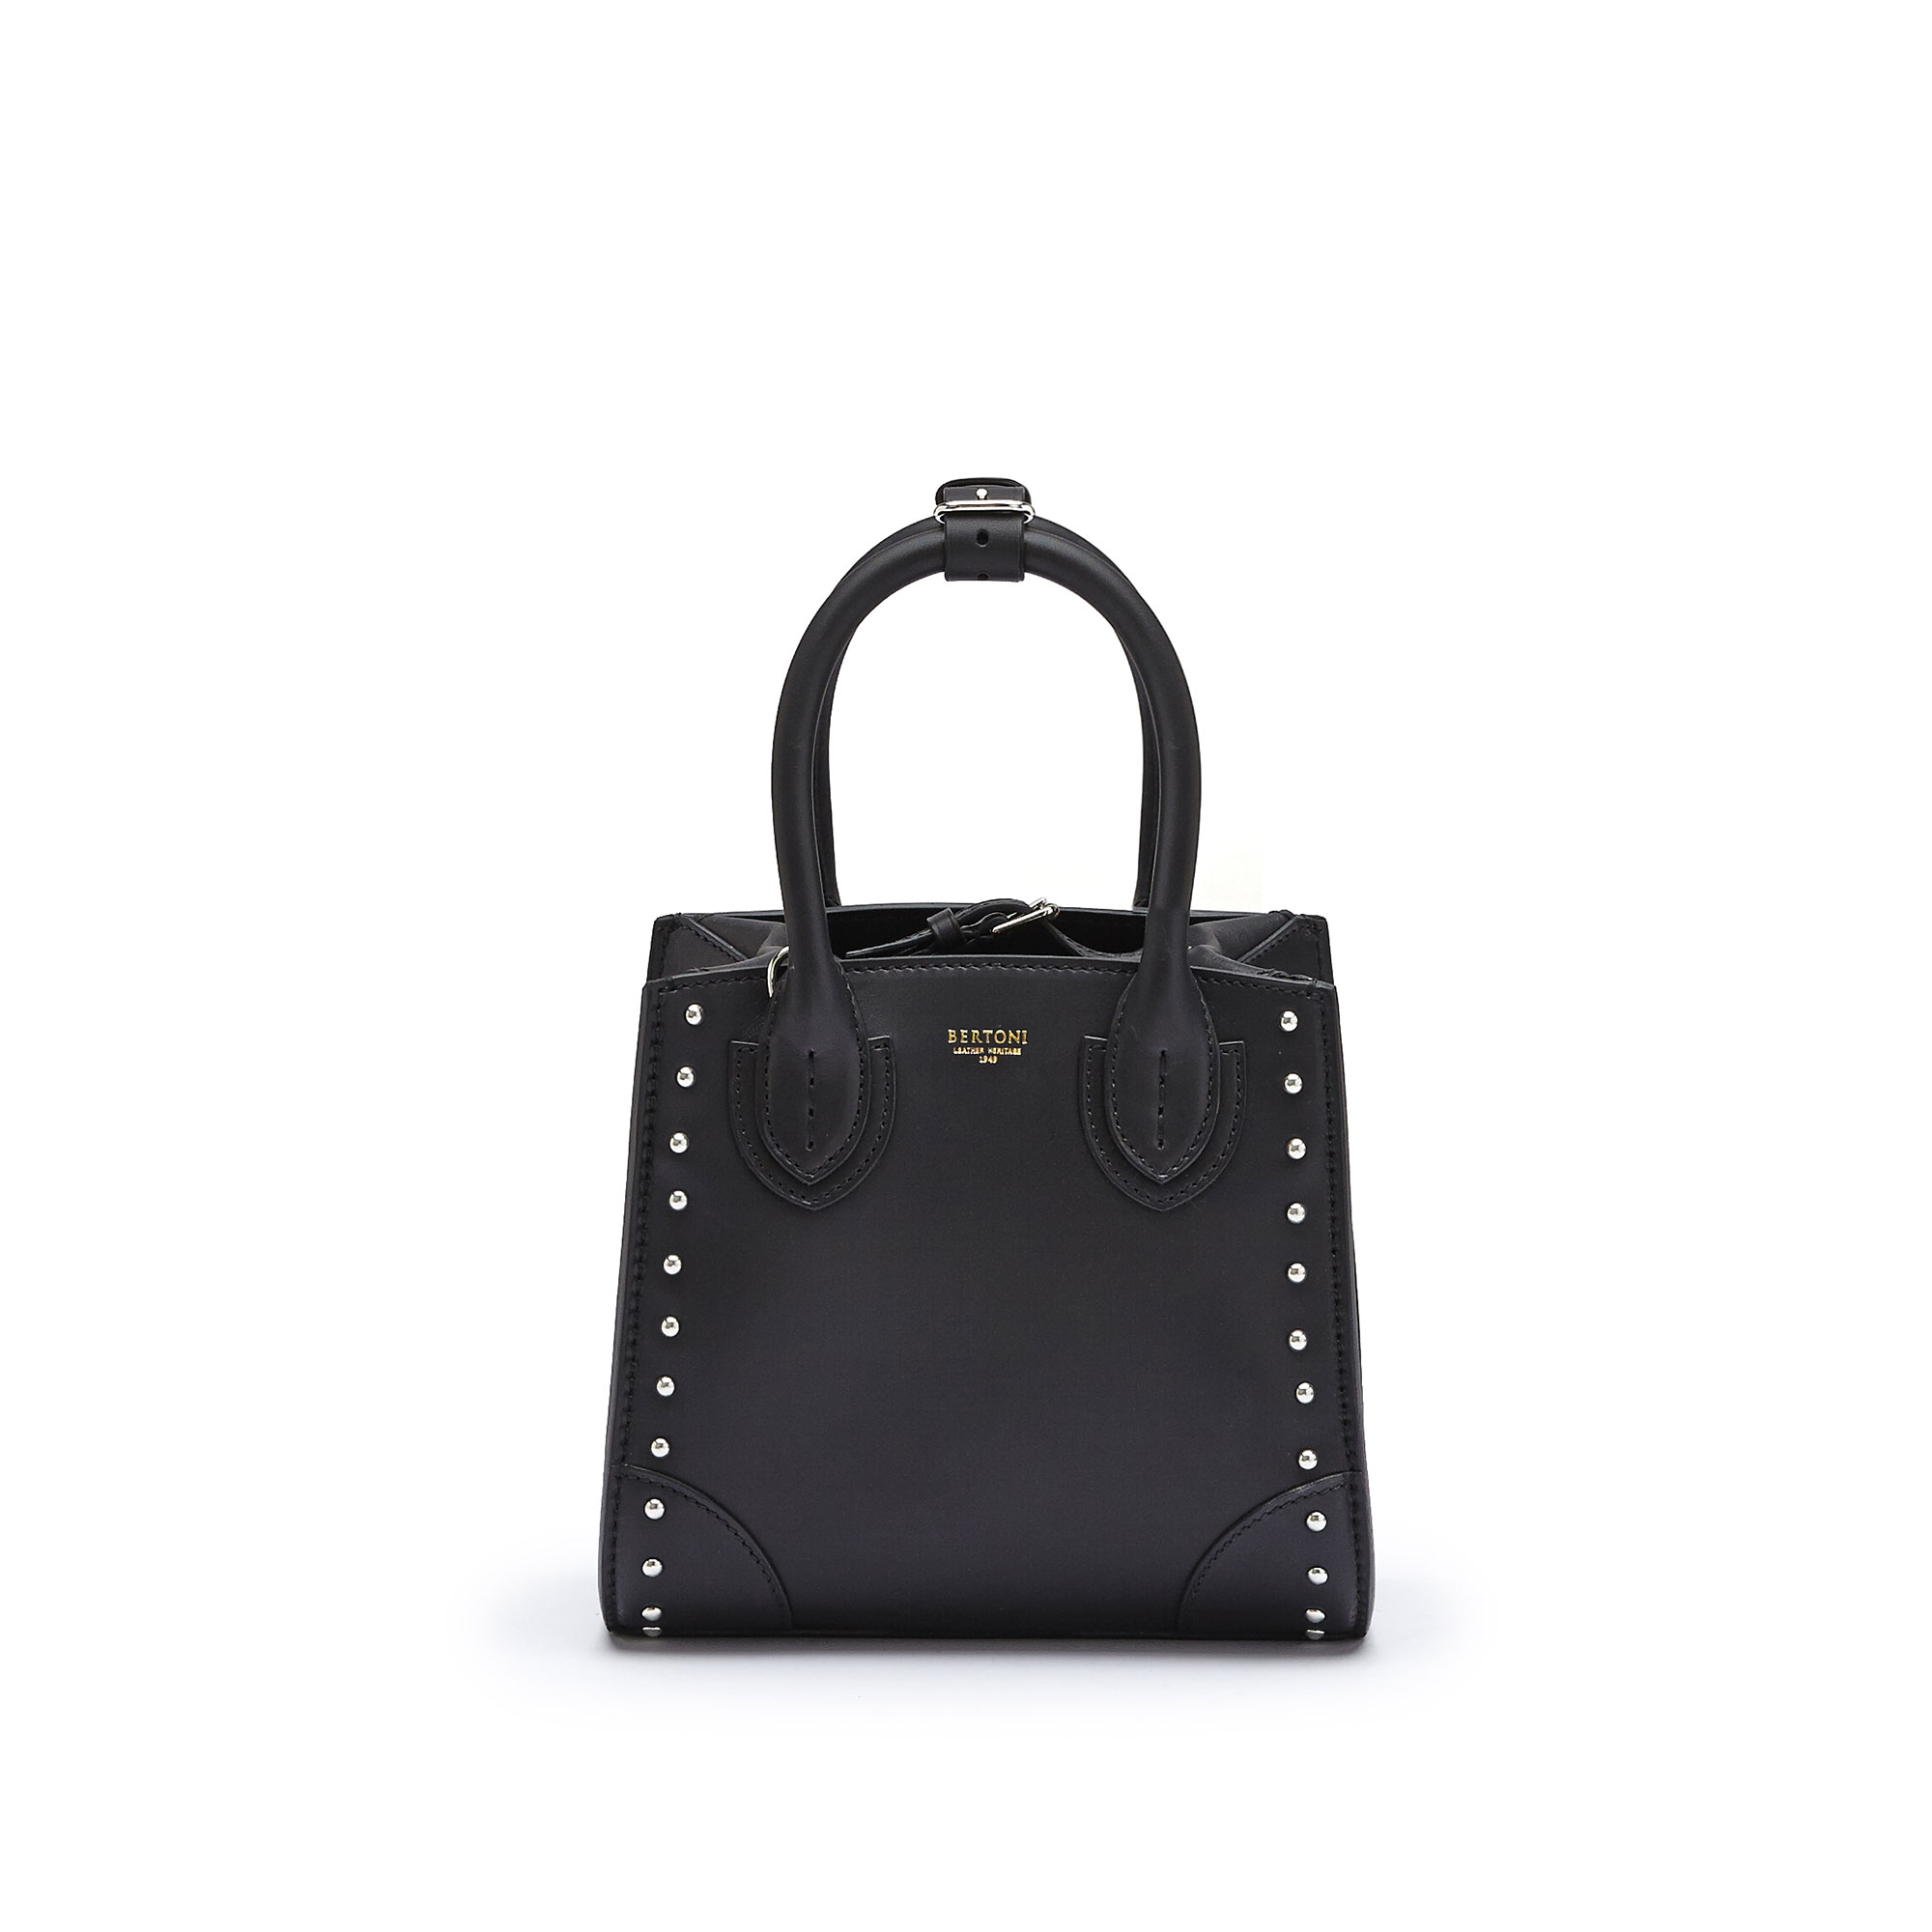 The black studded french calf Darcy small bag by Bertoni 1949 02